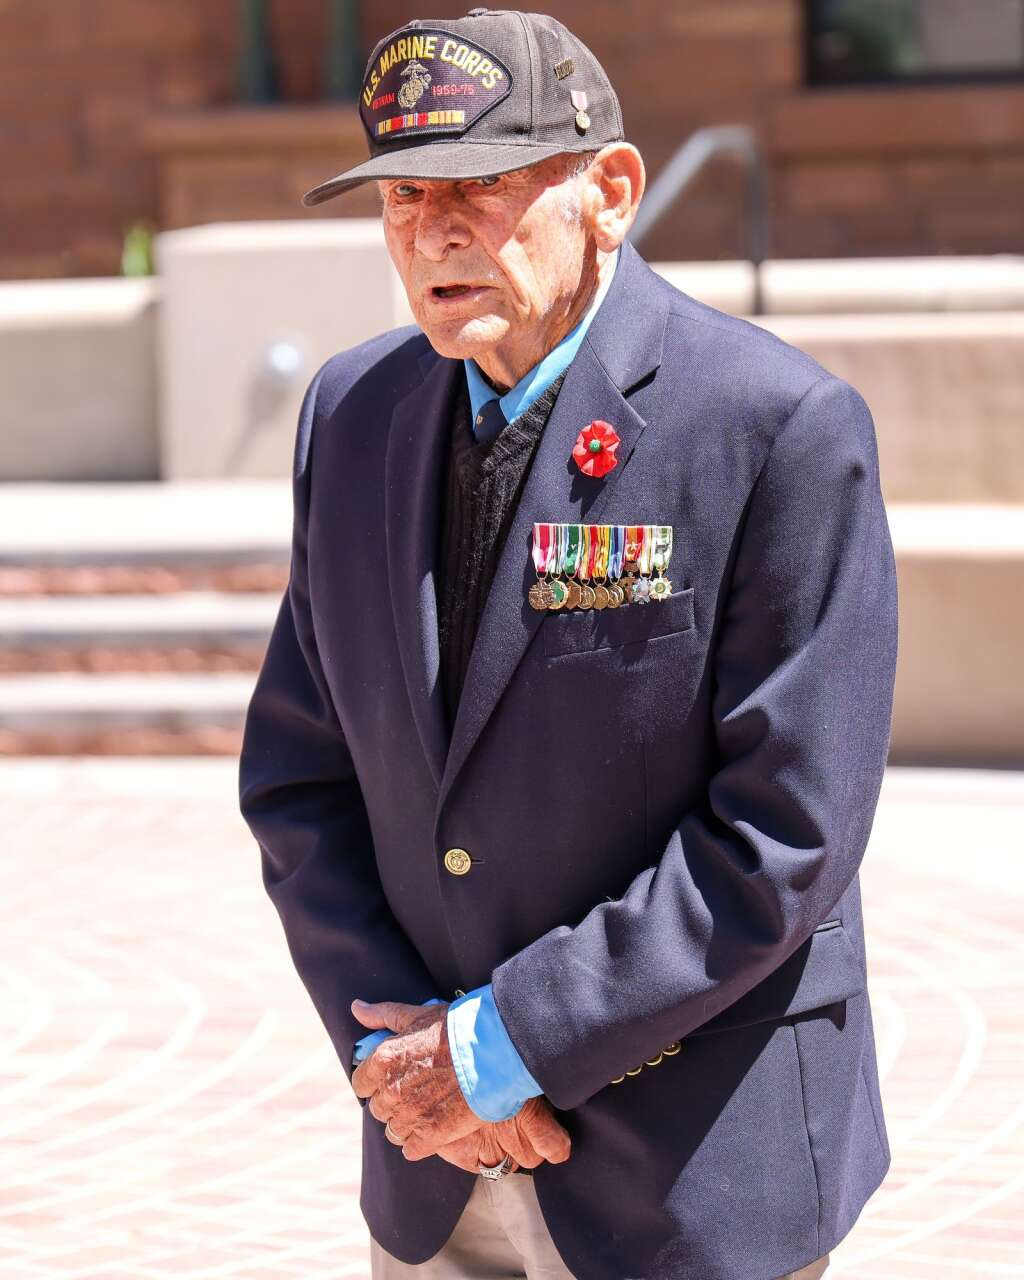 Retired Marine Lt. Col. Dick Merritt speaks during the annual Memorial Day ceremony on Monday, May 31, 2021, at Pitkin County Veterans Memorial Park in Aspen. Photo by Austin Colbert/The Aspen Times.